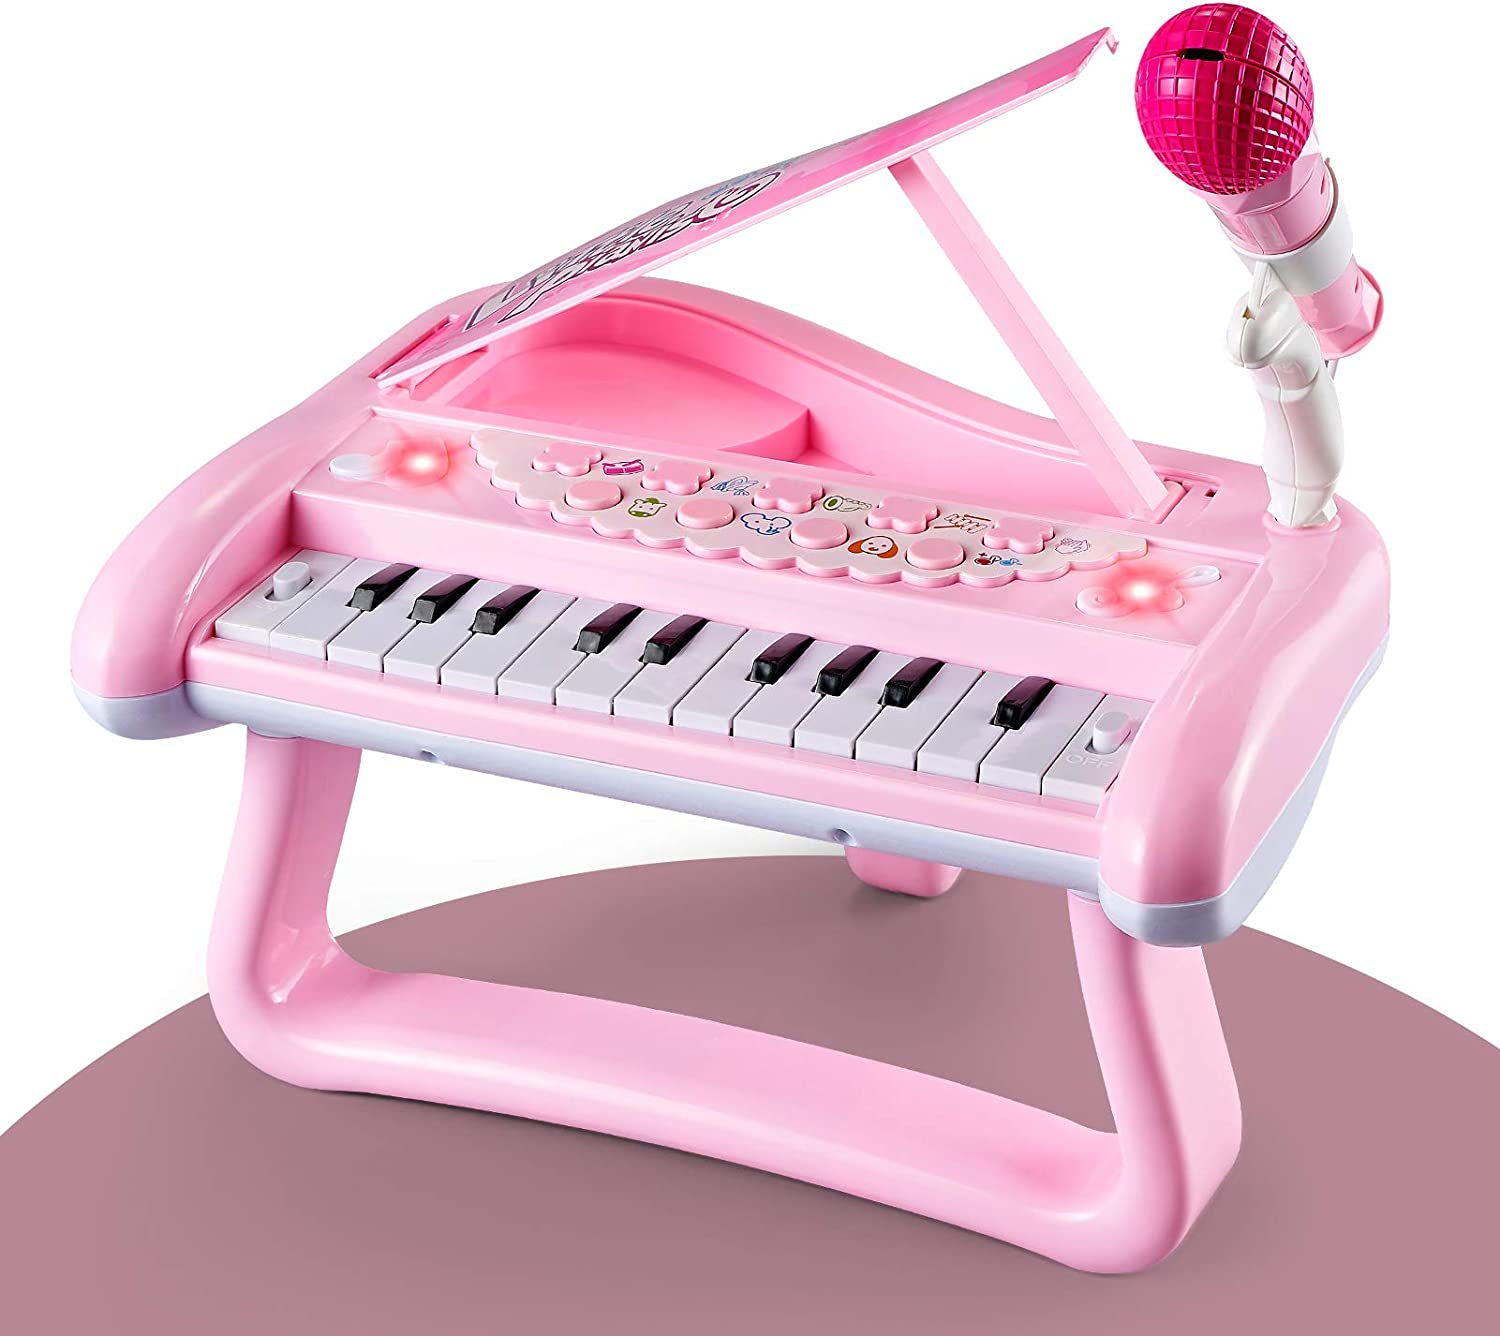 ZMZS First Birthday Toddler Piano 5 ☆ popular Toys for Girls Year online shopping Bab 1 Old